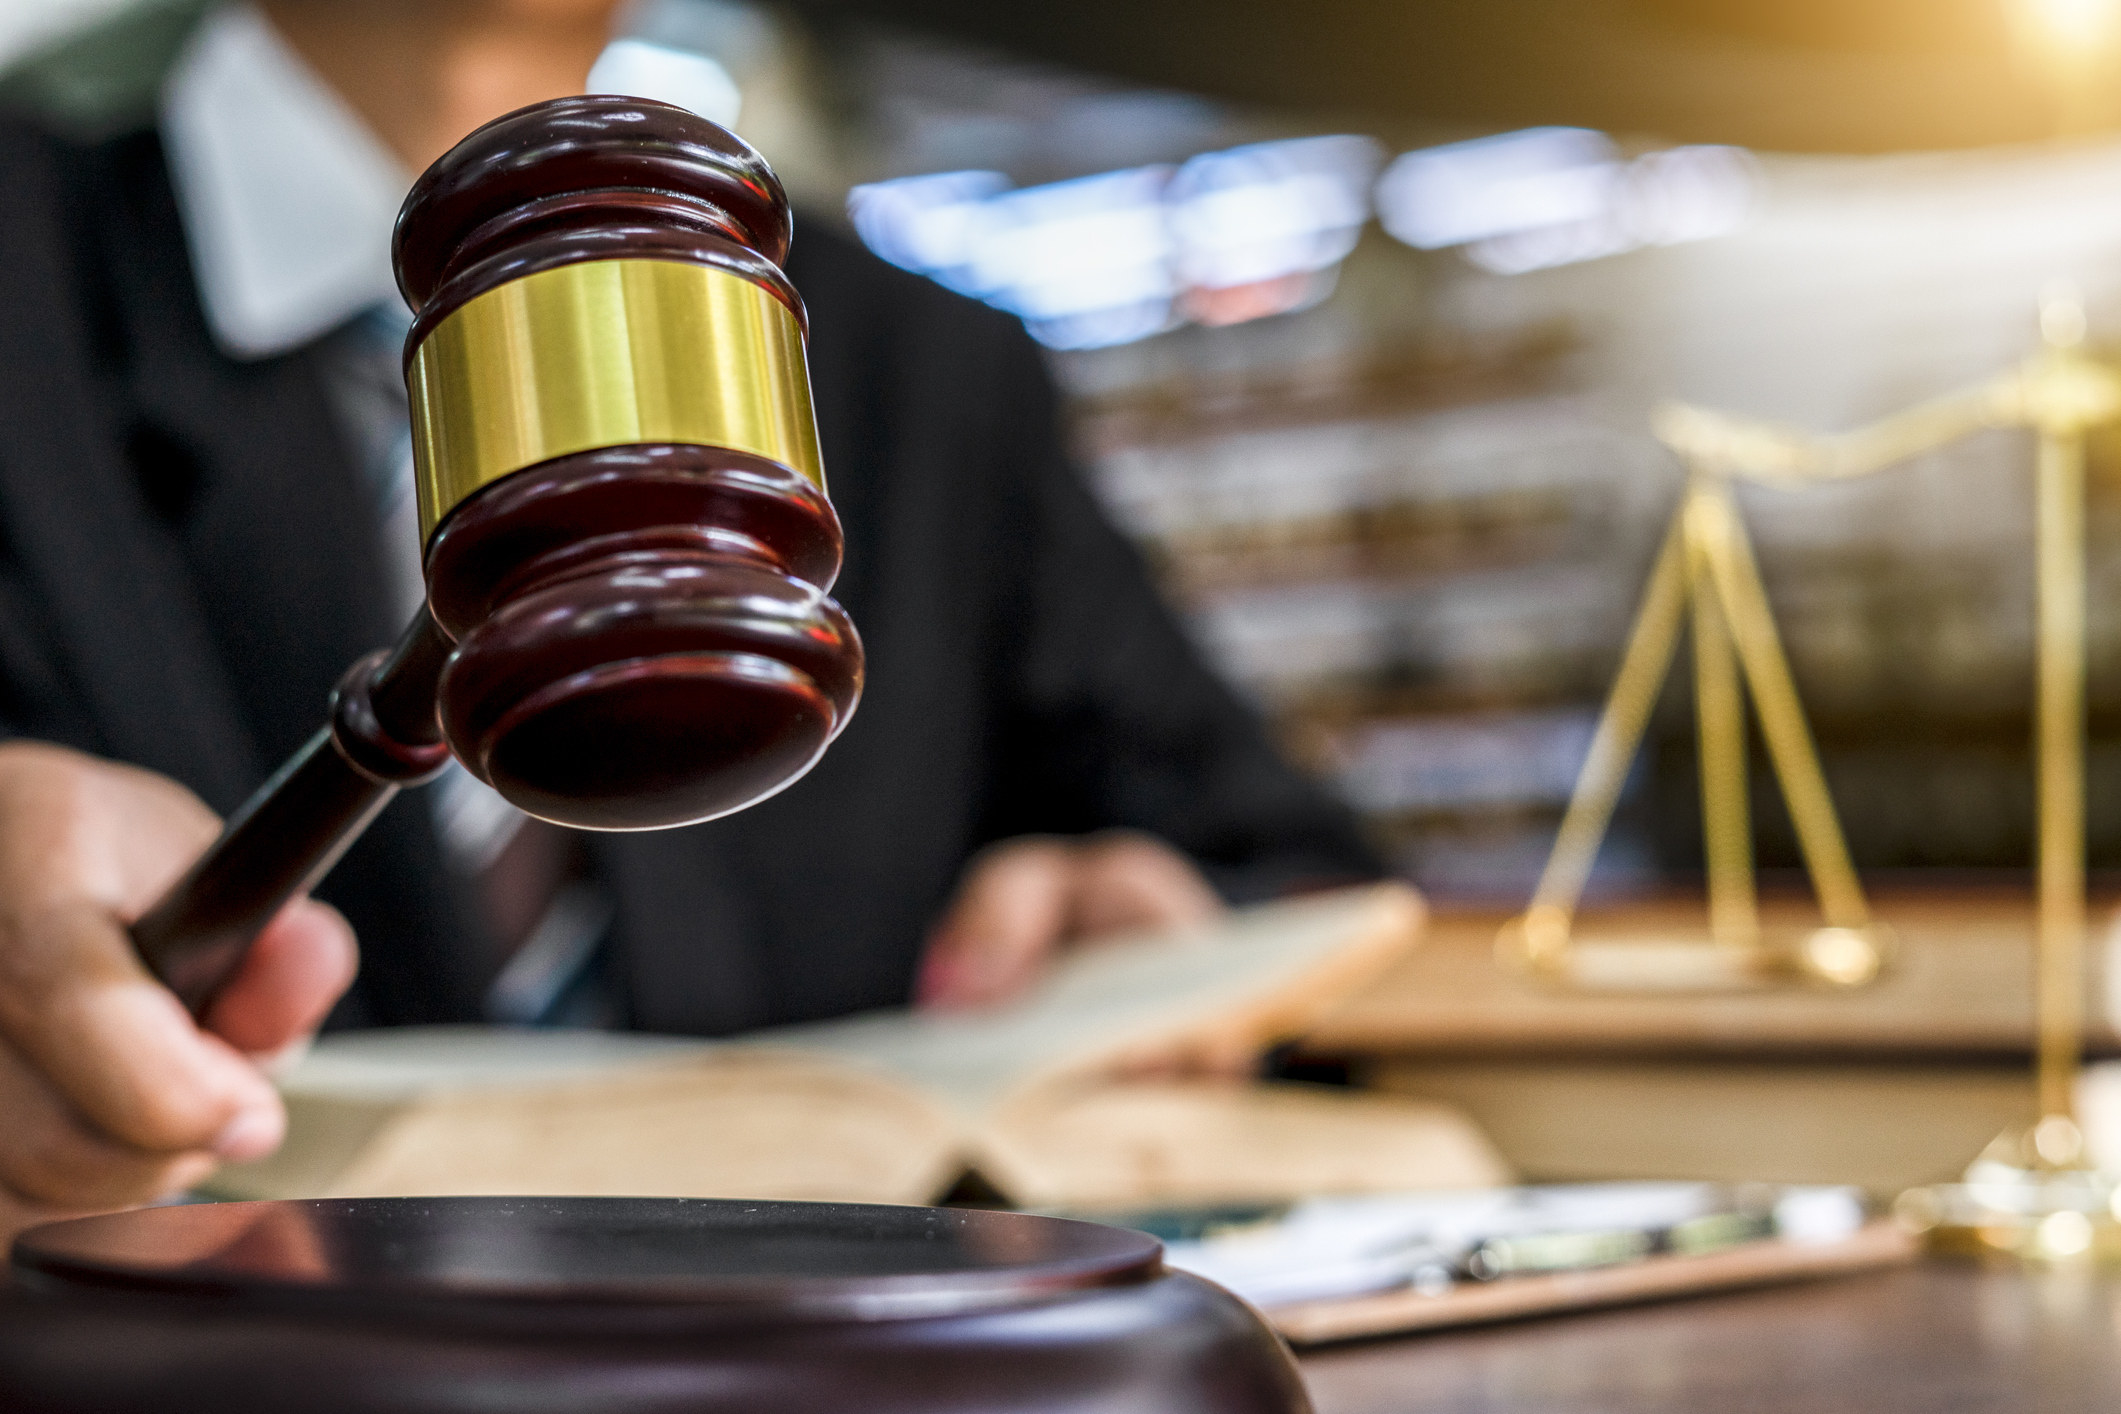 Close-up of a gavel being held by a judge-type holding a book, about to strike a sound block. Golden scales of justice sit on a table in the background